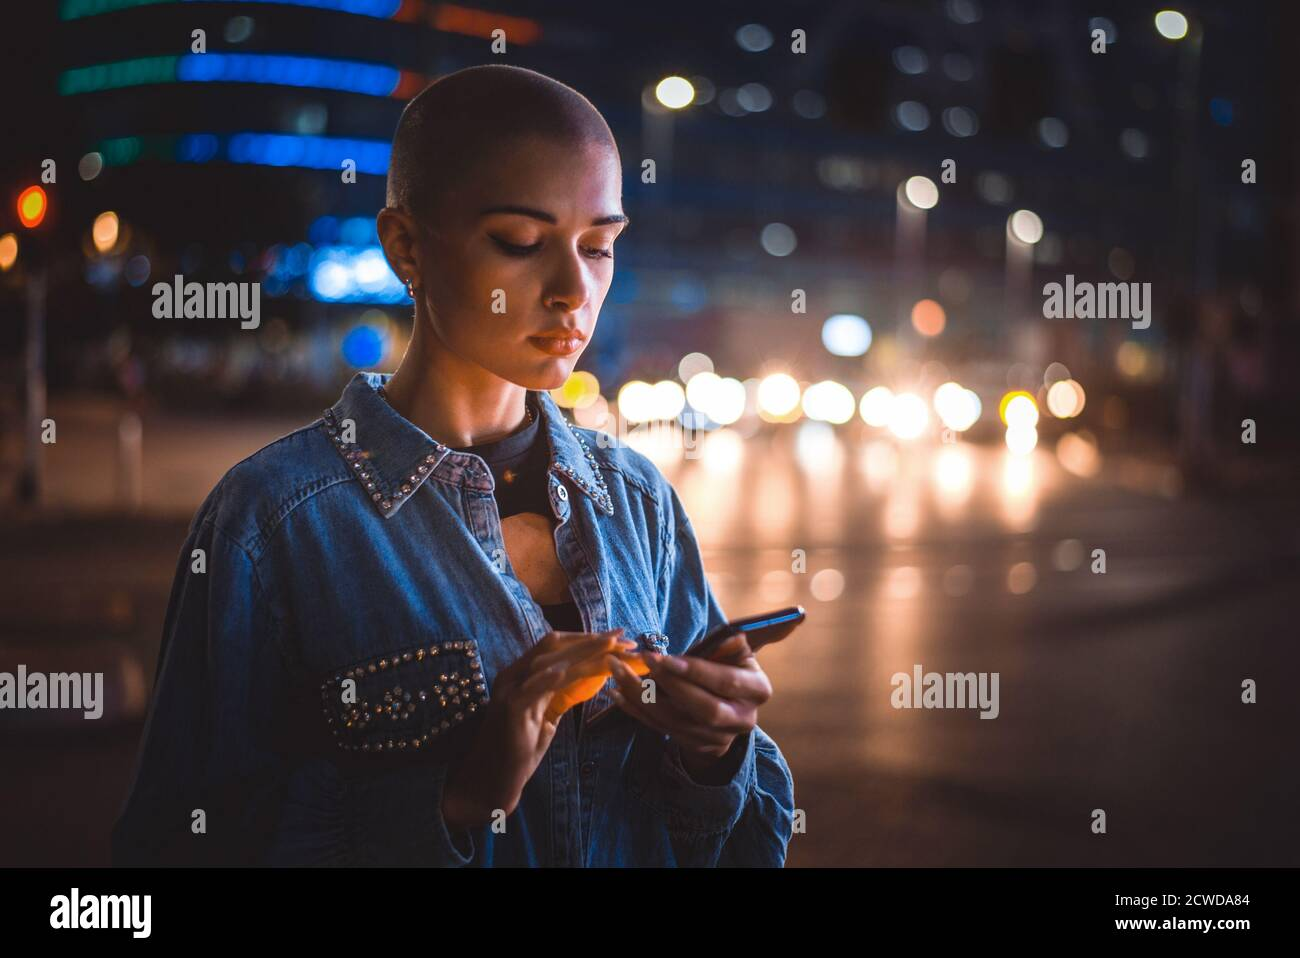 Image of a young woman using mobile phone on the street. Girl with short shaved hair walking in the evening in the city center Stock Photo